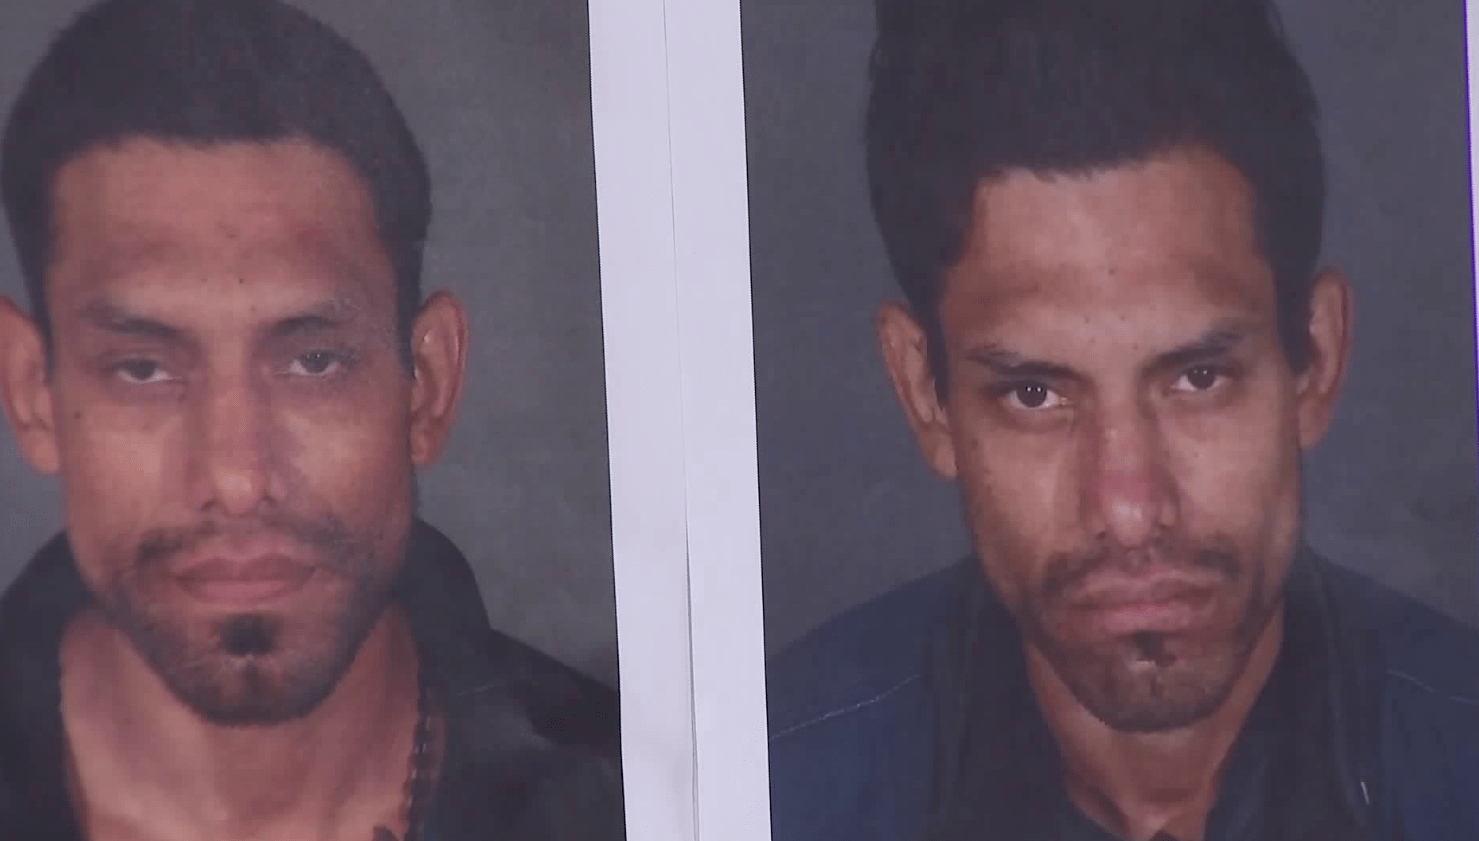 Oscar Armando Lopez is seen in booking photos released by the Los Angeles Police Department on June 11, 2018.